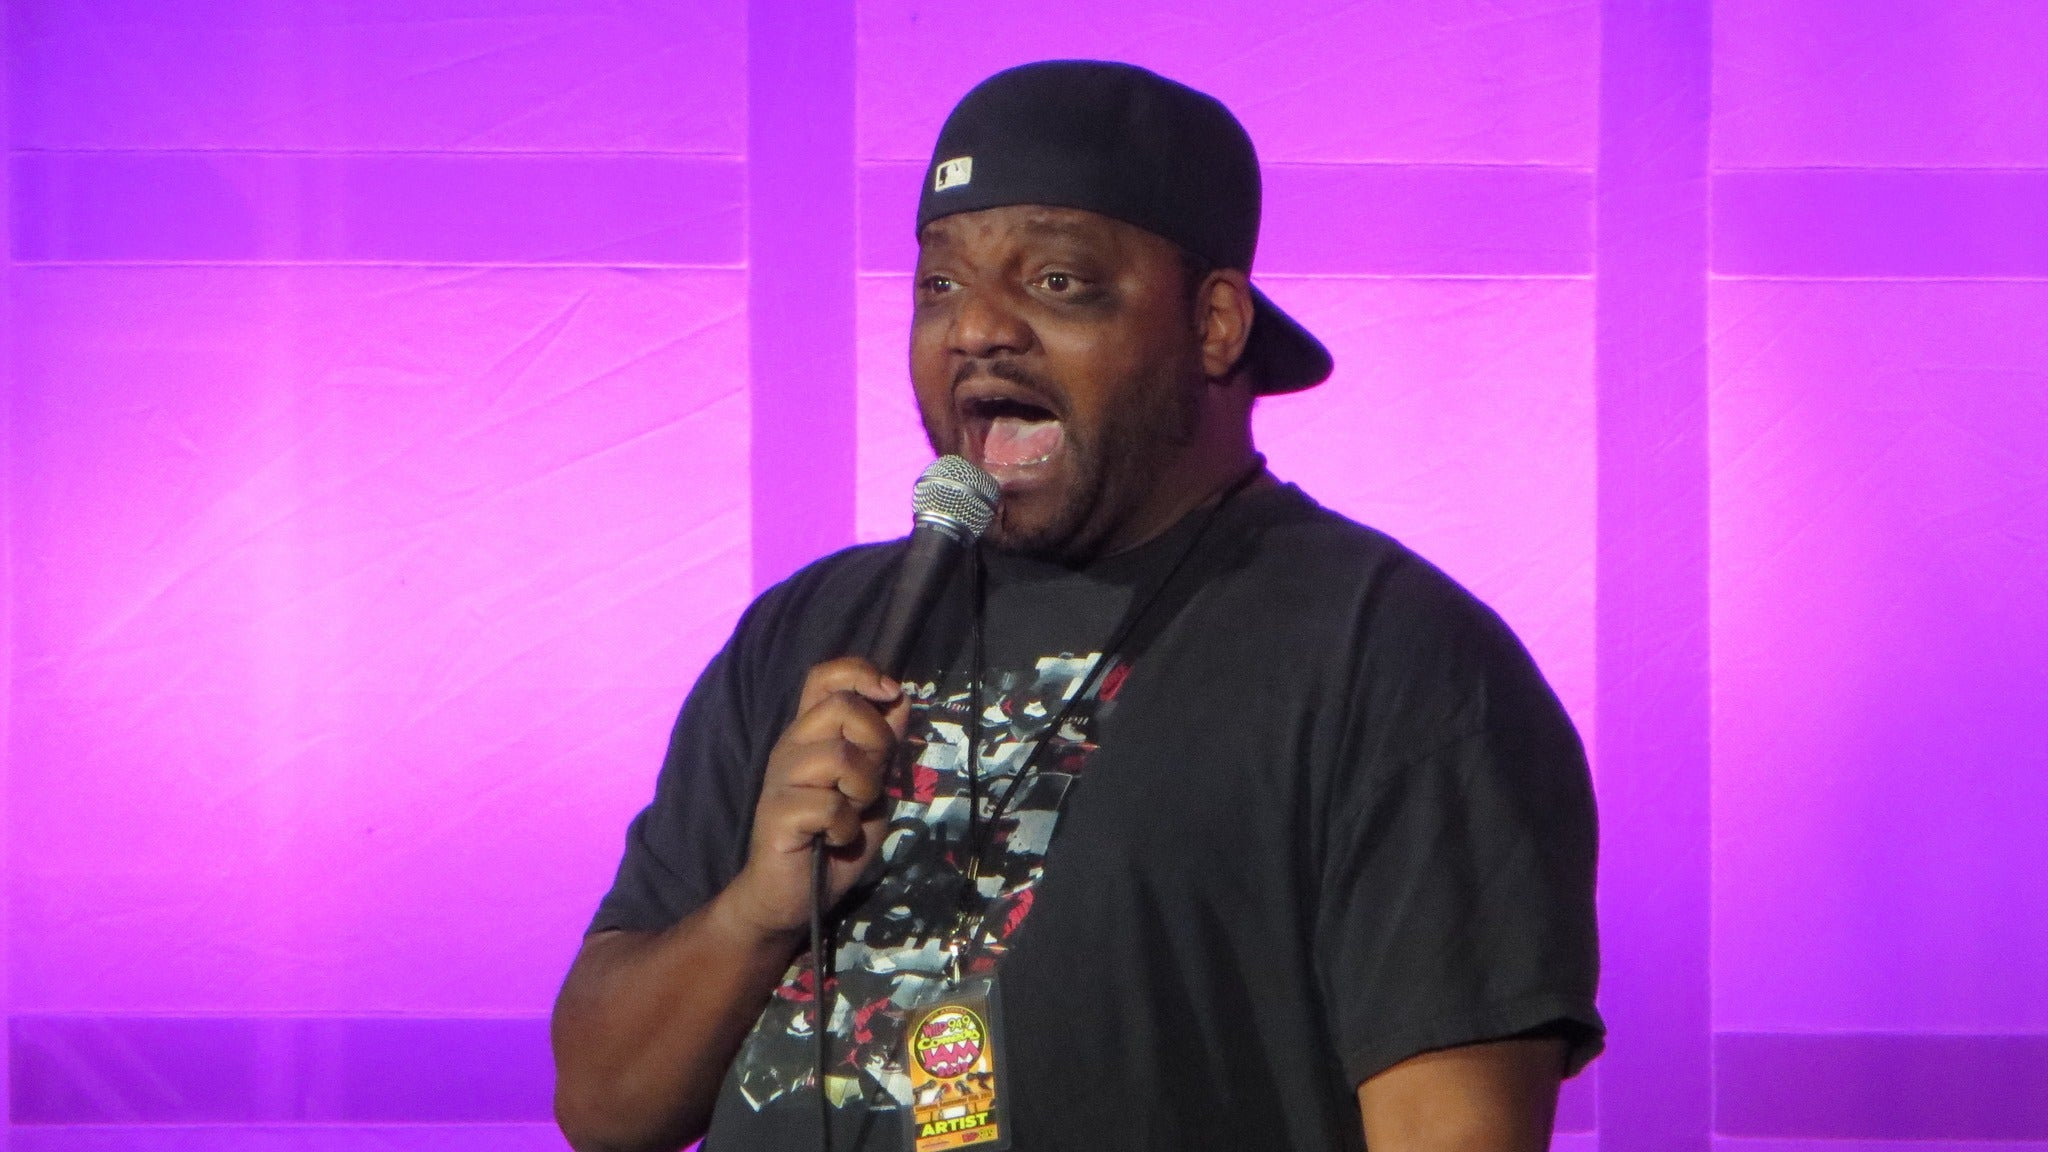 Aries Spears at Brea Improv